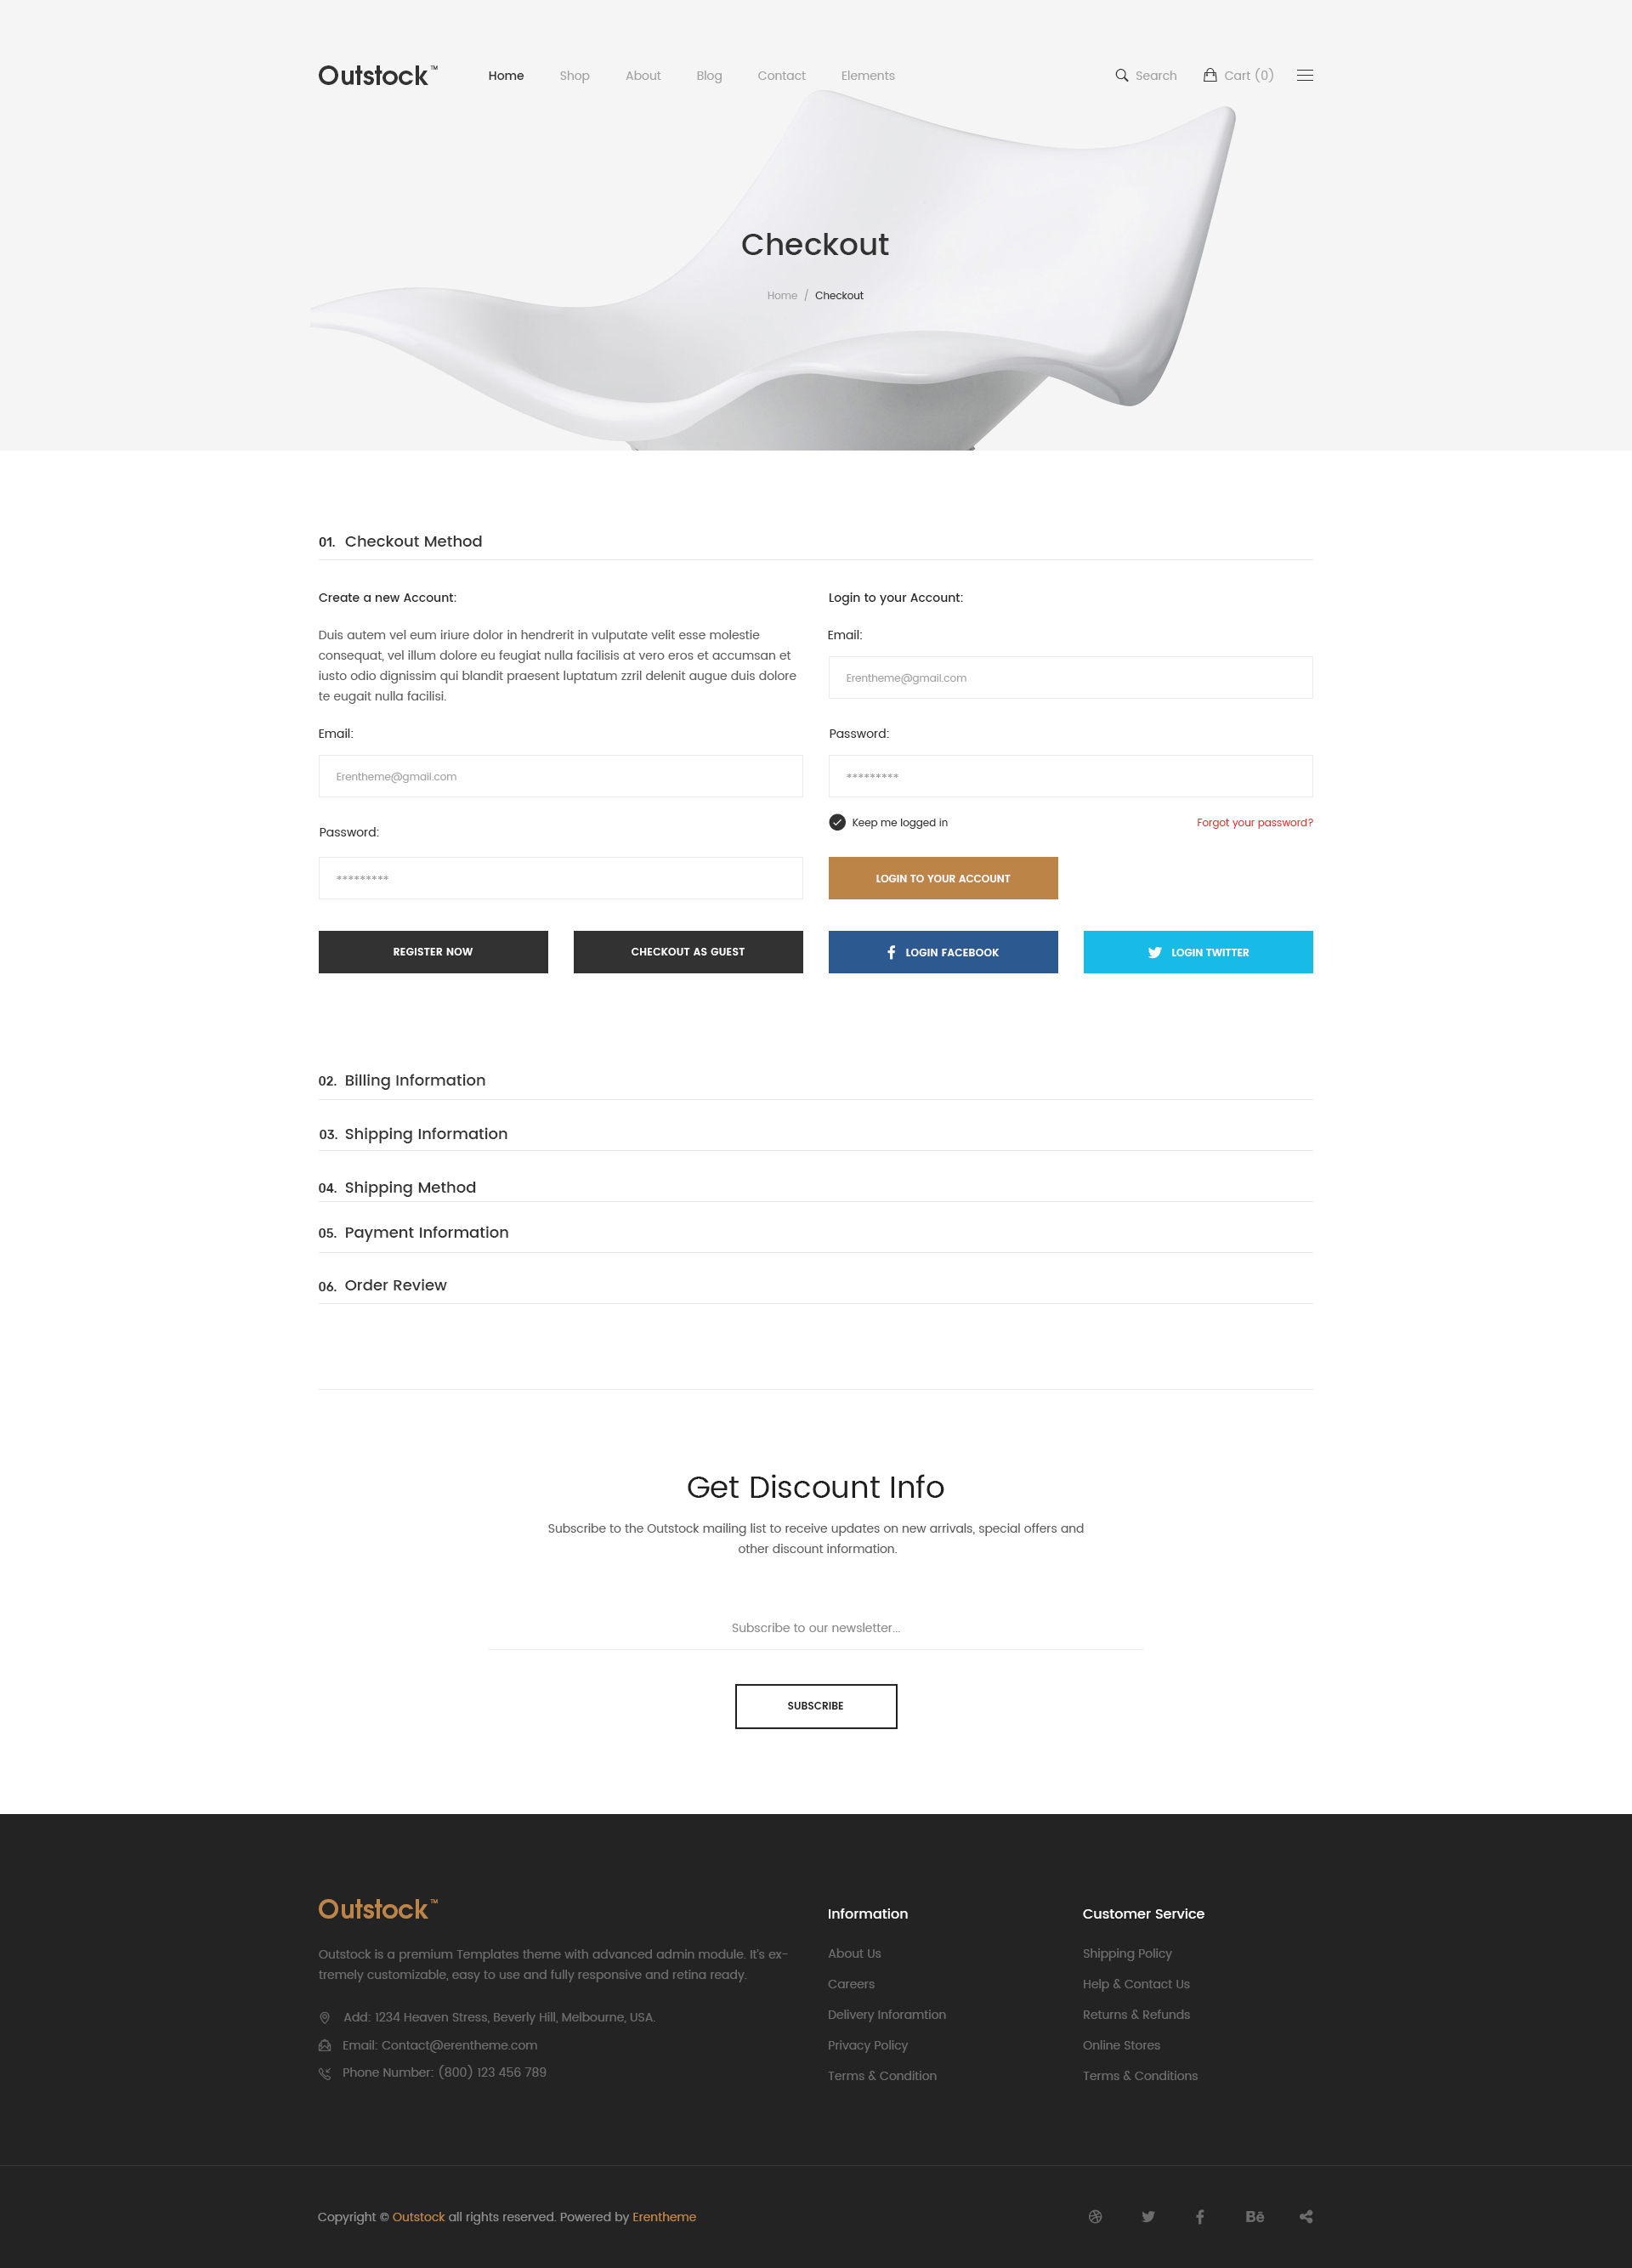 Employee Handbook Receipt Pdf Shipping Information Template  Virtrencom Nch Express Invoice Pdf with Uk Invoice Templates Word Backorder Invoice Template Invoice With Gst Template Excel